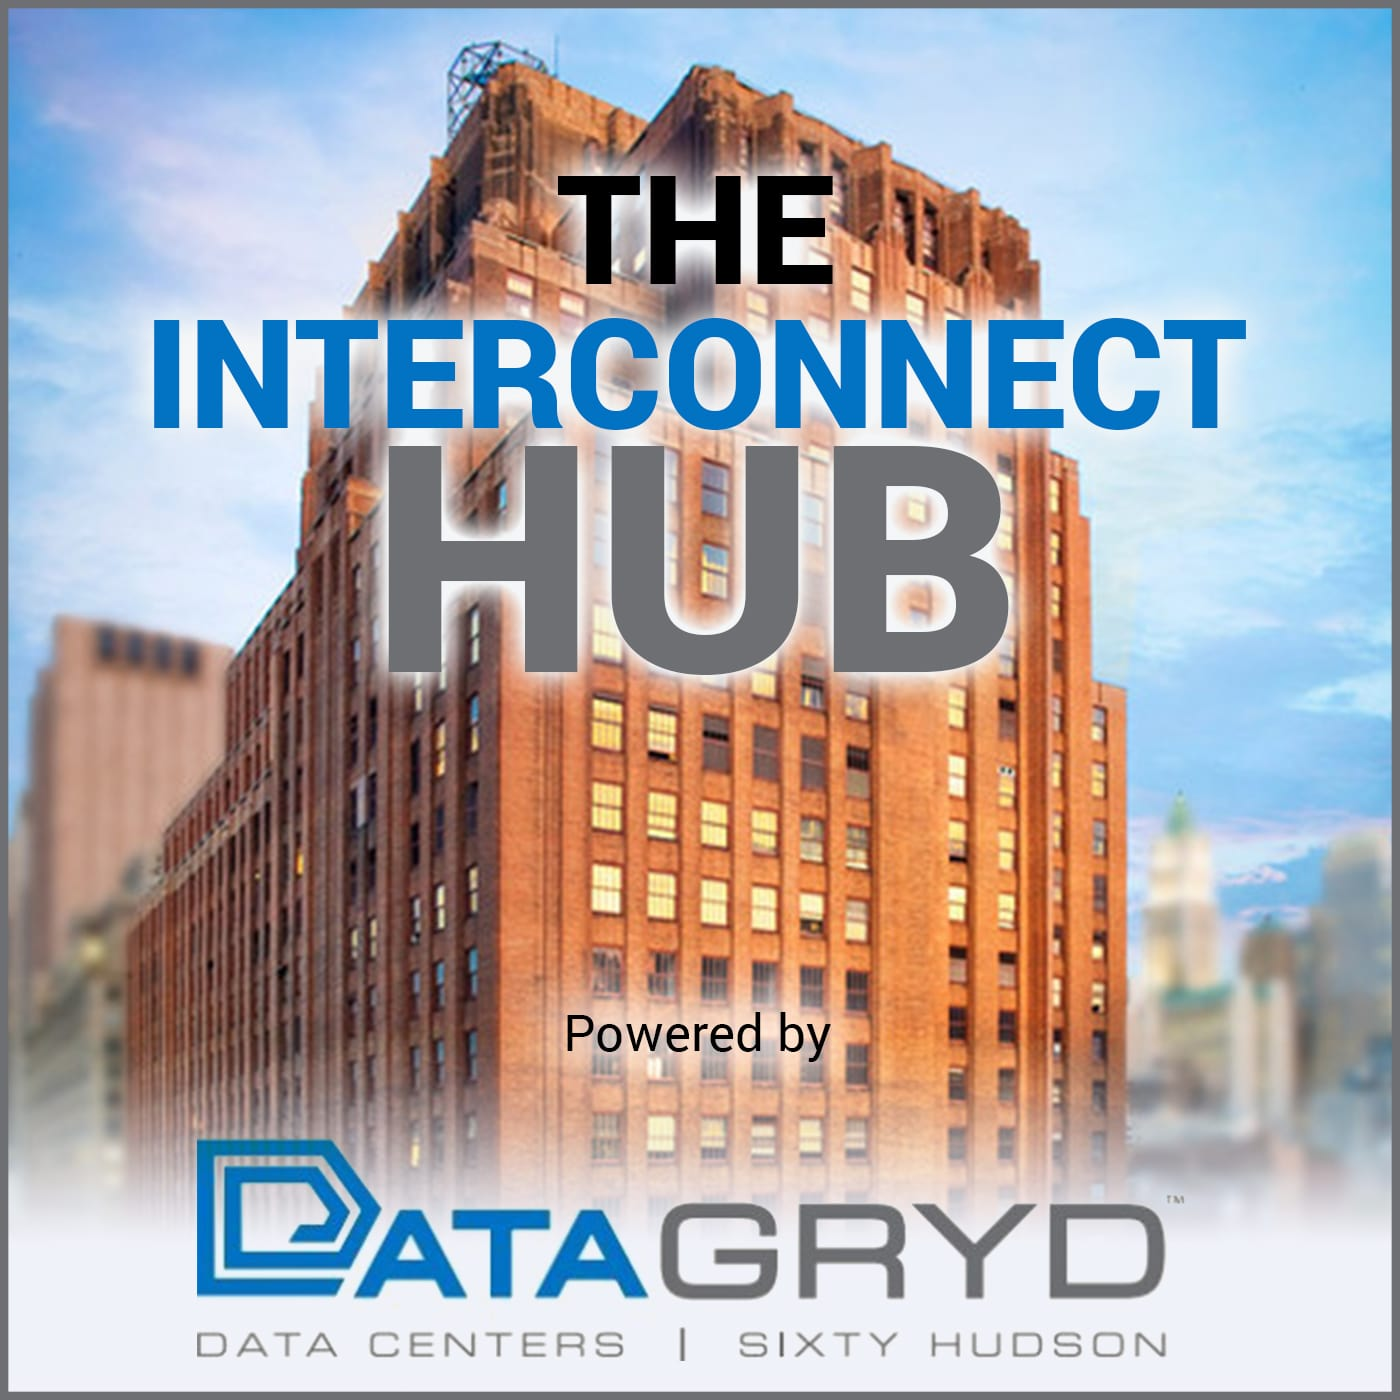 The Interconnect Hub